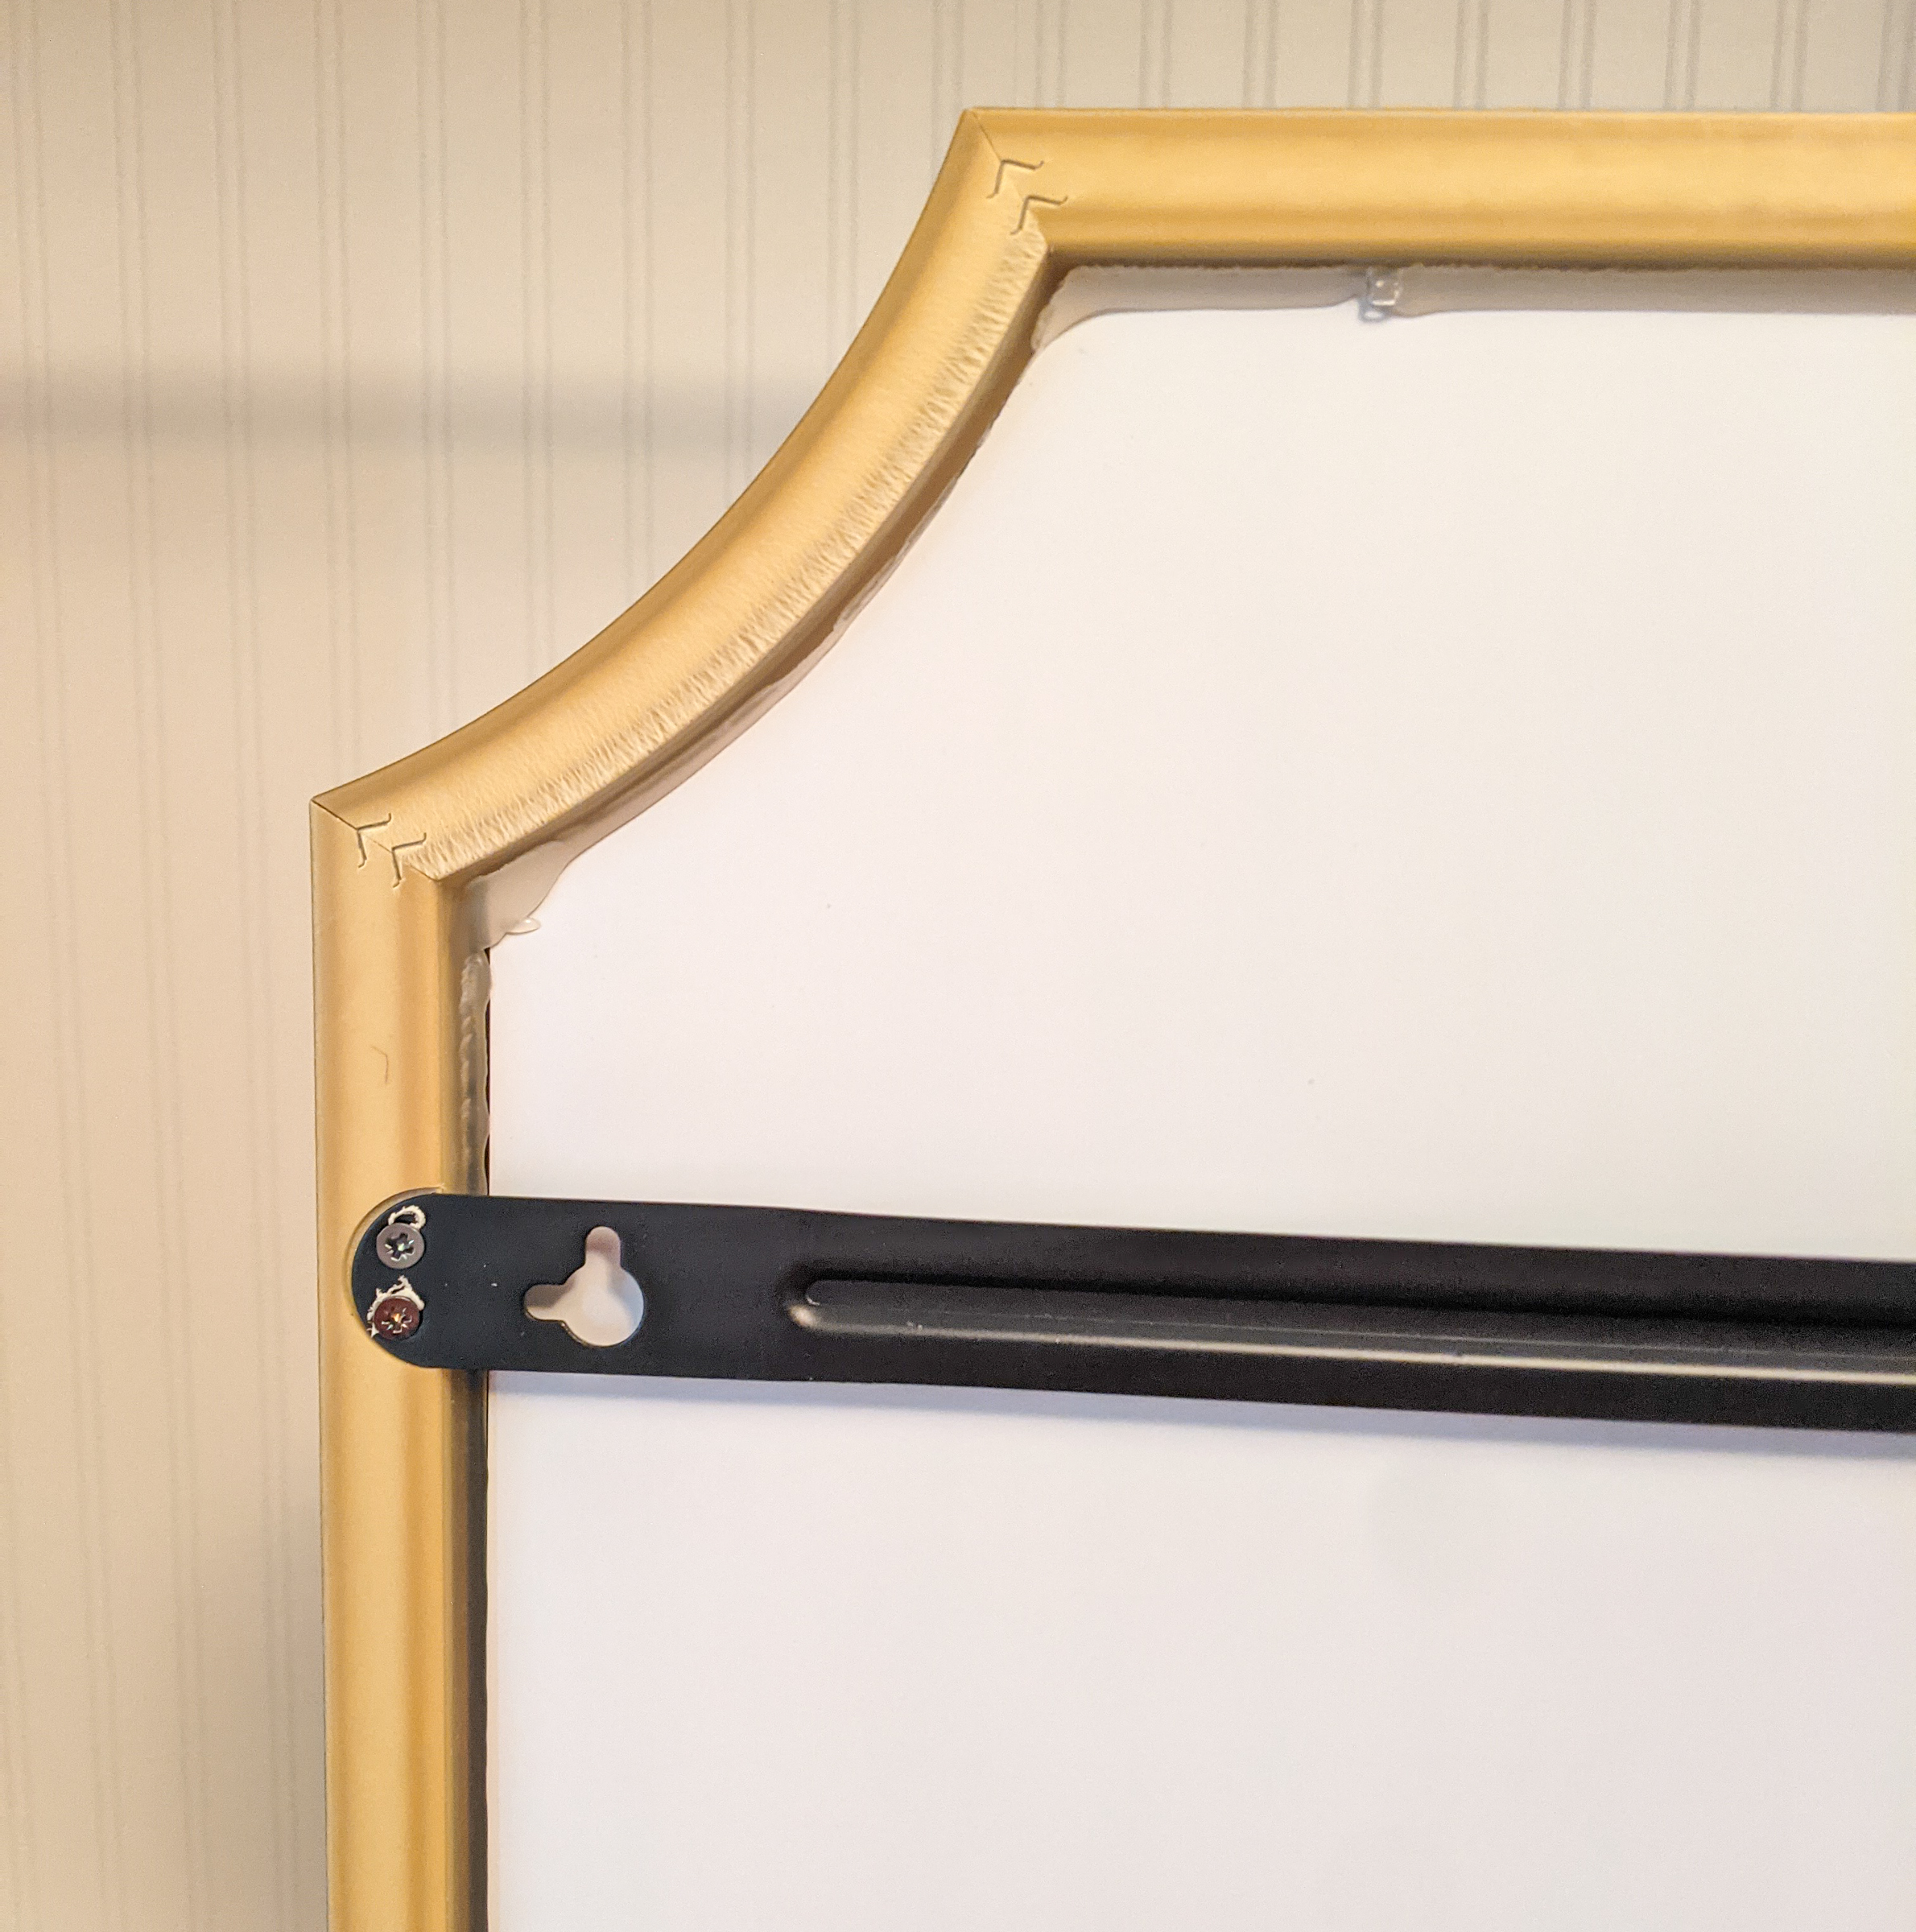 A close-up of the back side of the smear shows the support bars and hanging bracket, plus the back side of the frame and glue holding the mirror in the frame.